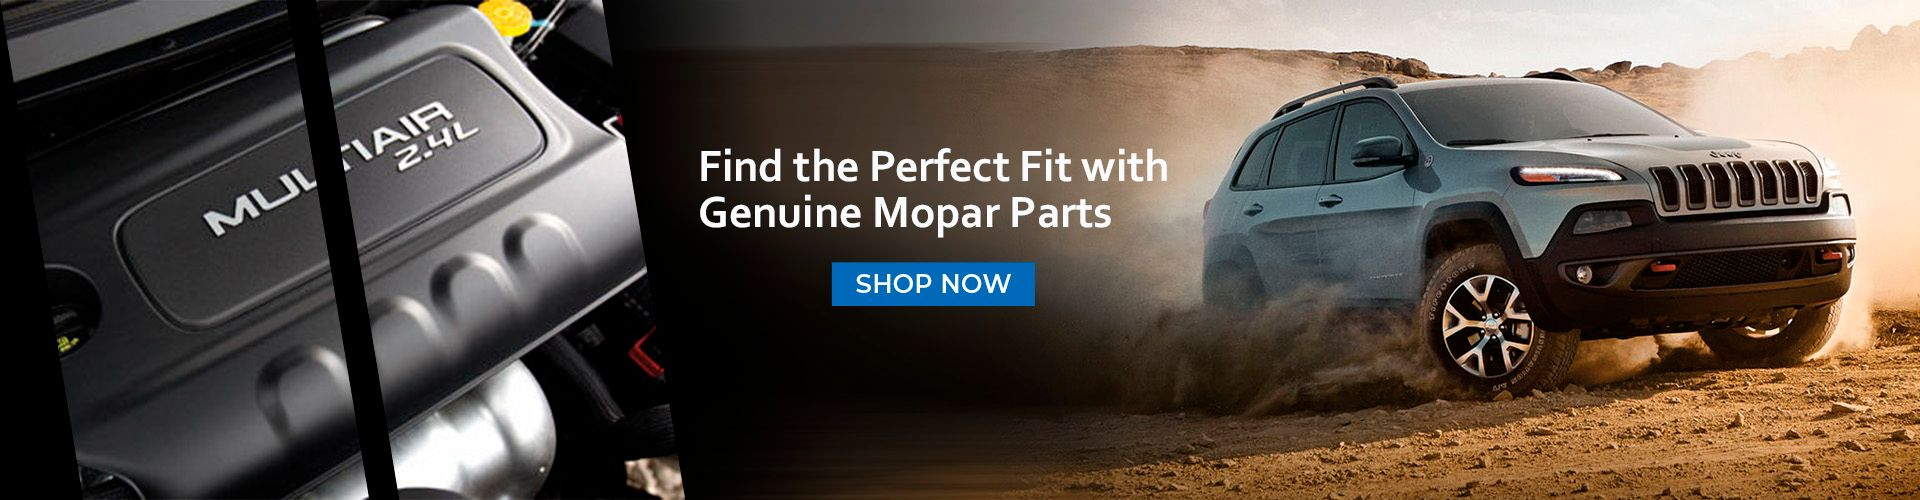 Shop Genuine Mopar Parts and Accessories